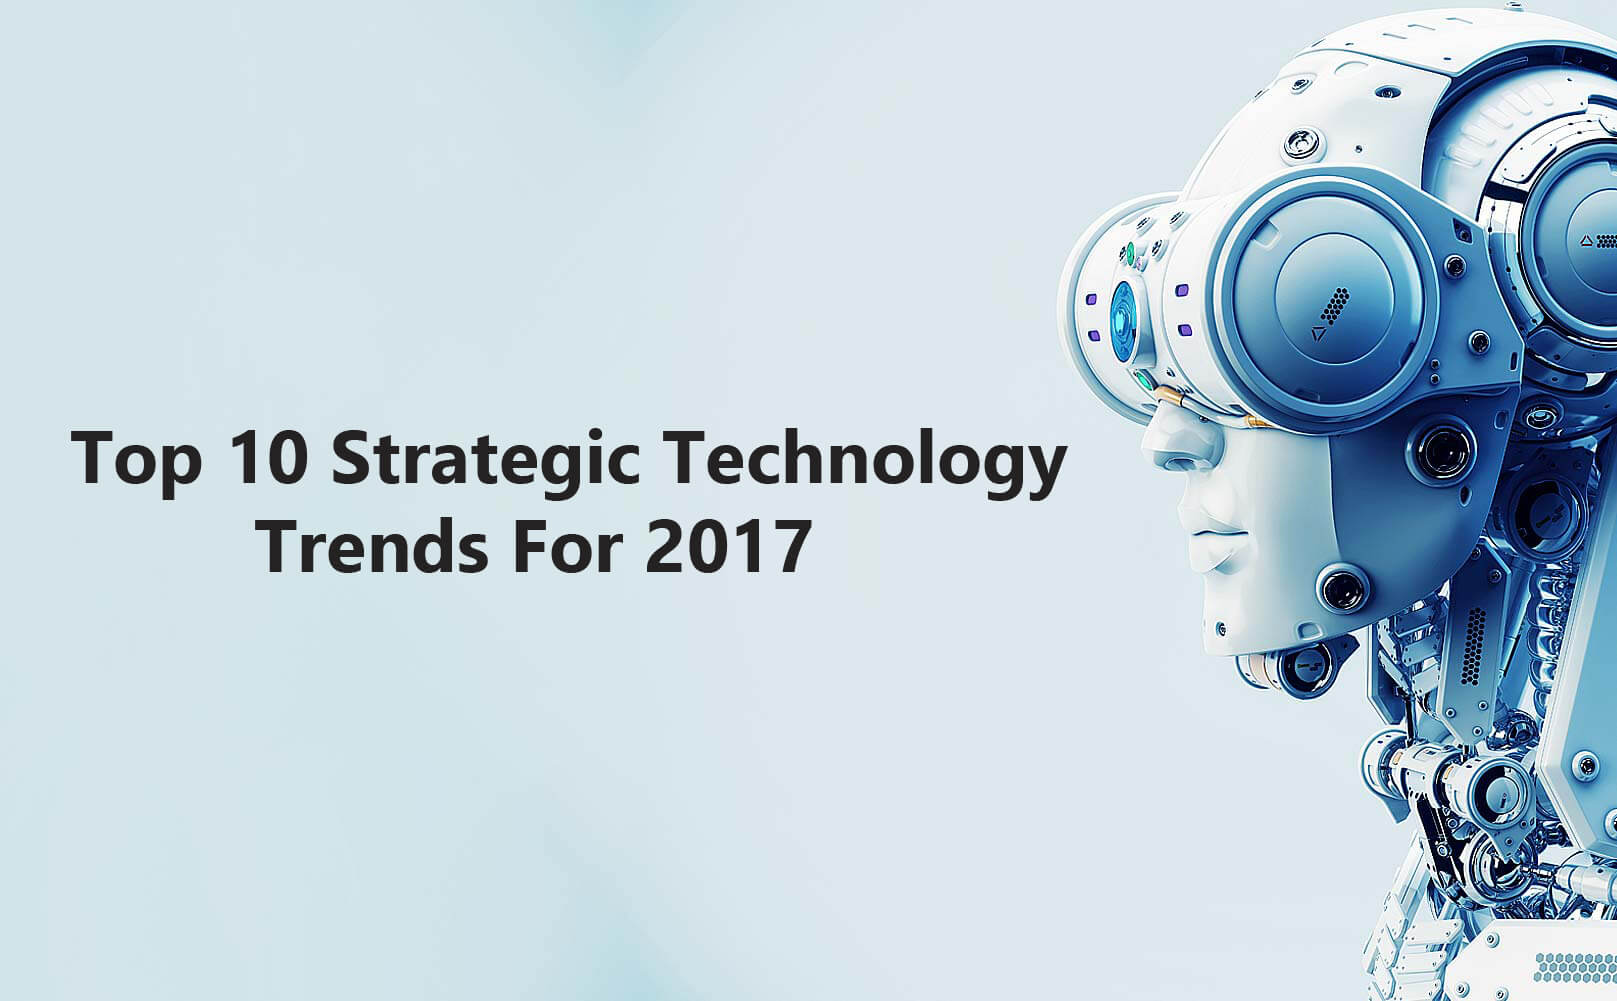 Technology Management Image: Top 10 Strategic Technology Trends For 2017